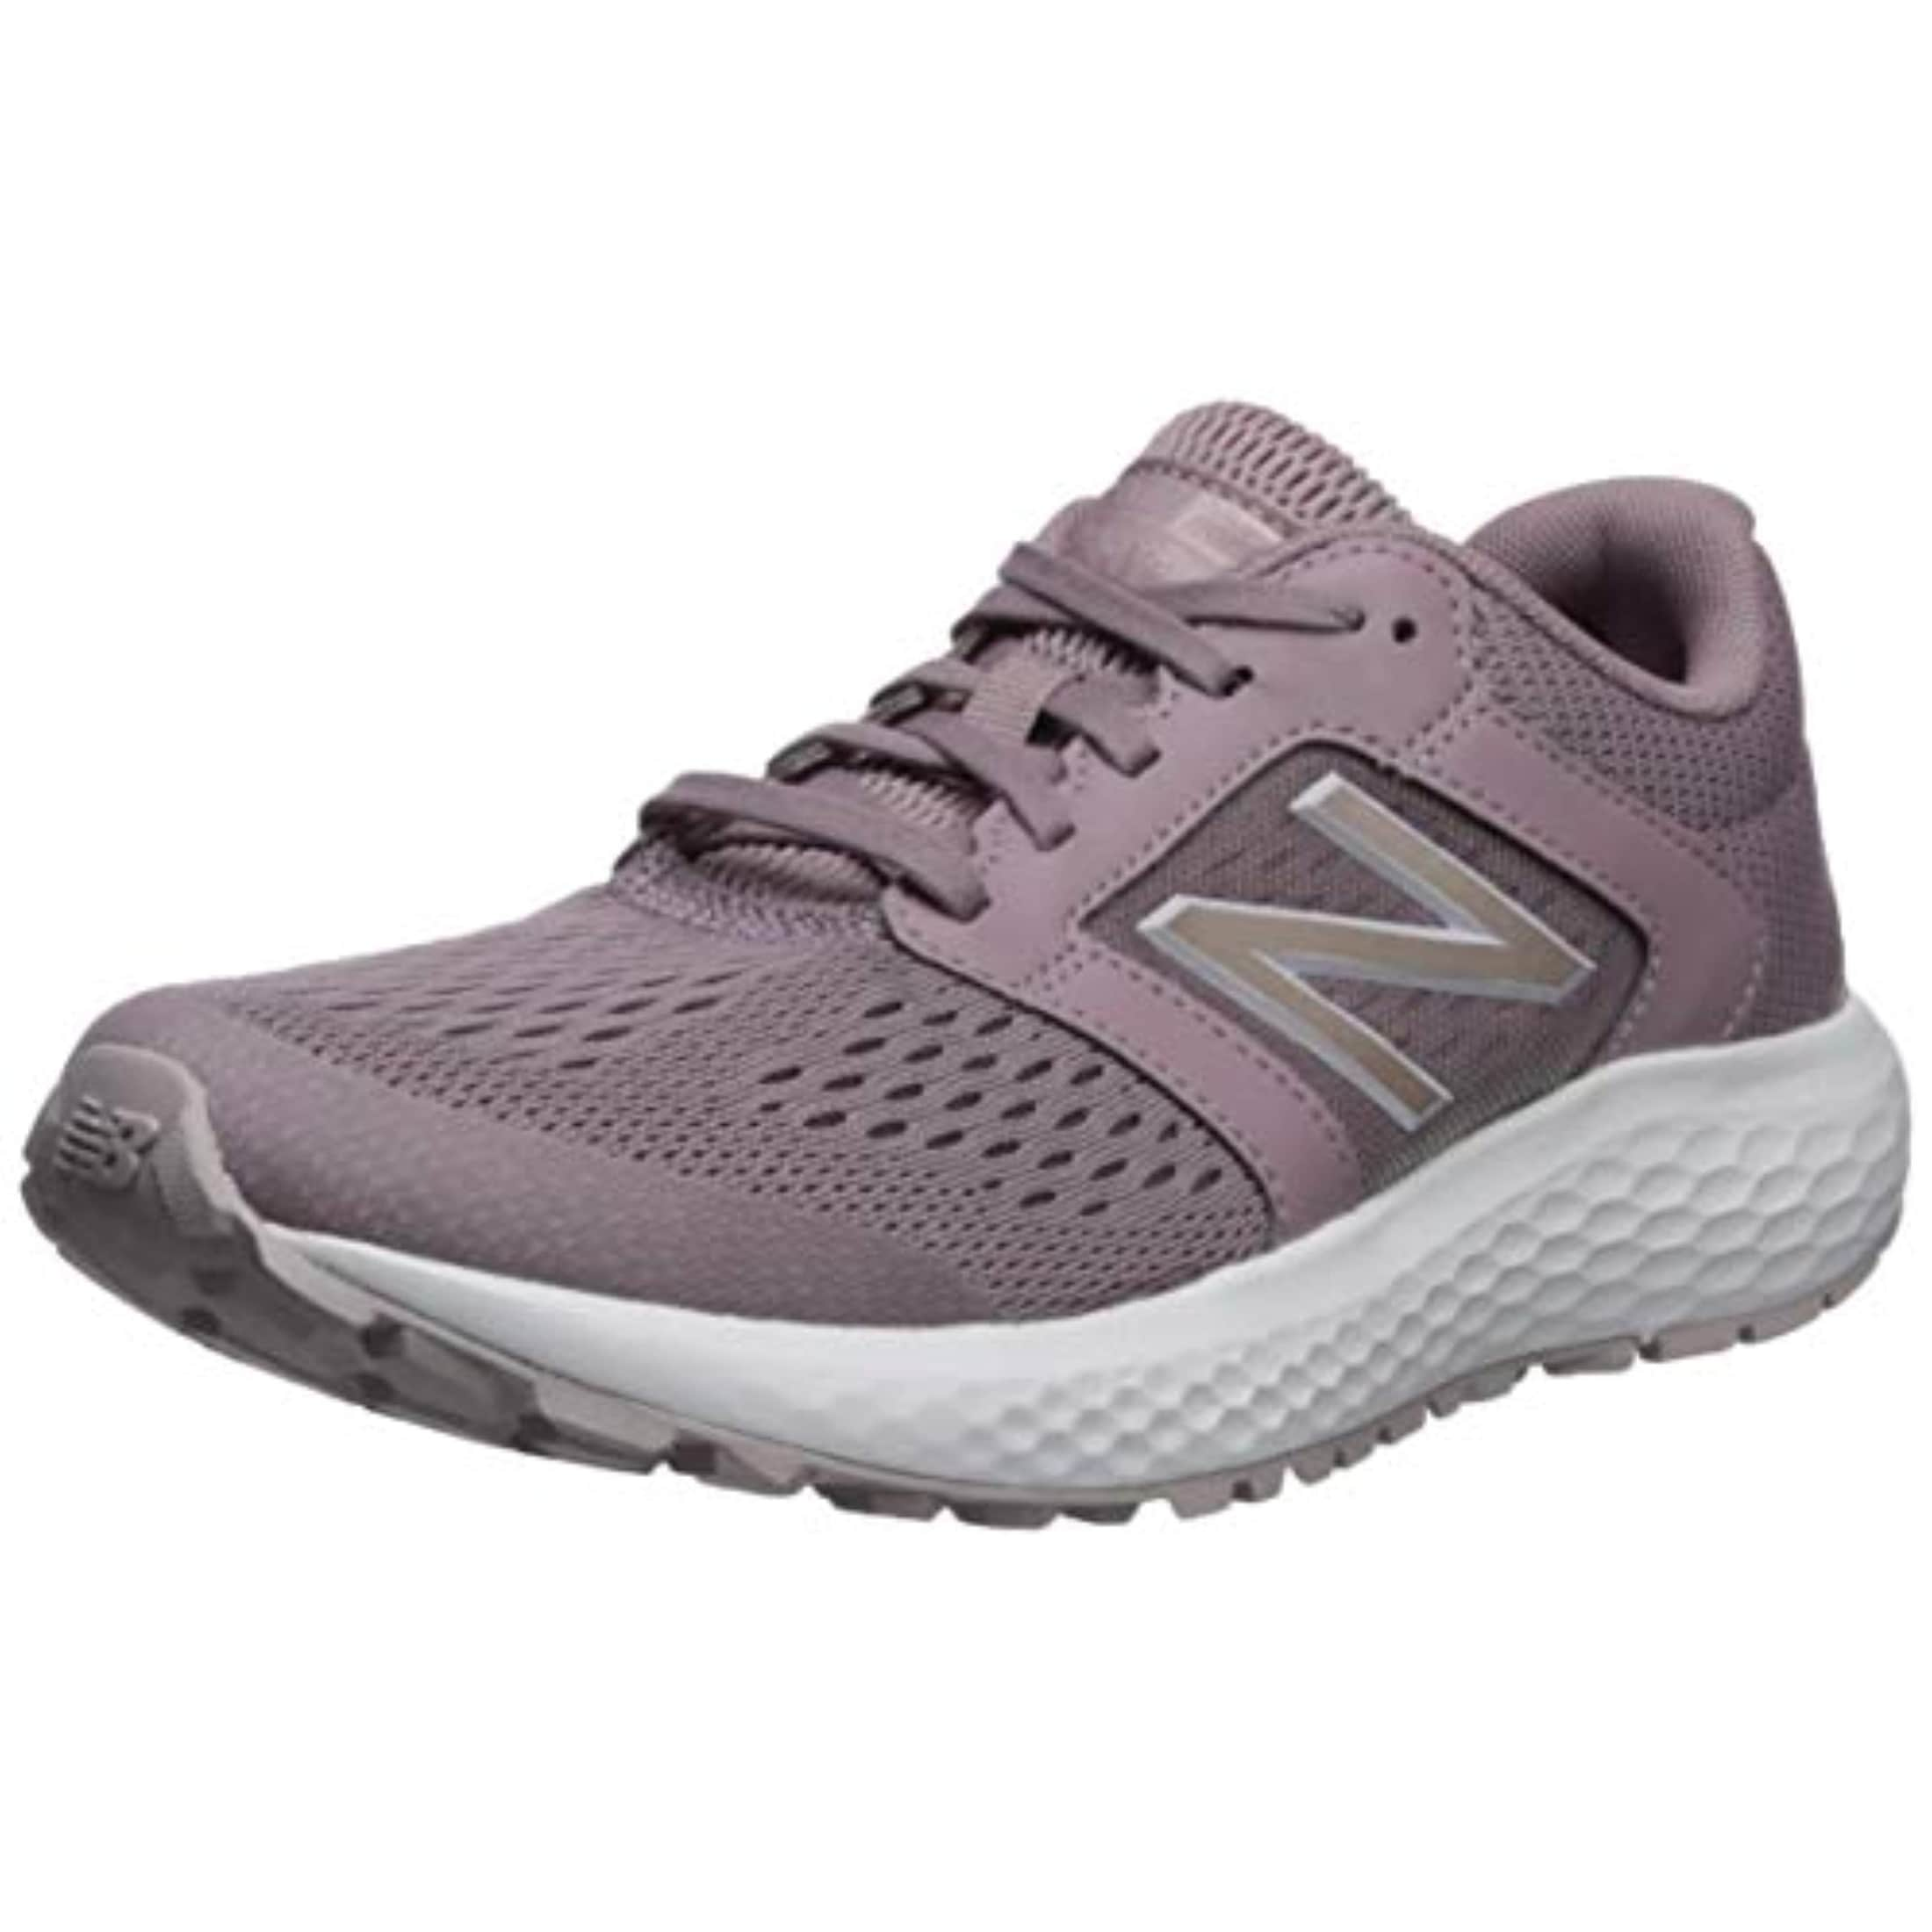 dc36e8eaffa96 New Balance Shoes | Shop our Best Clothing & Shoes Deals Online at Overstock